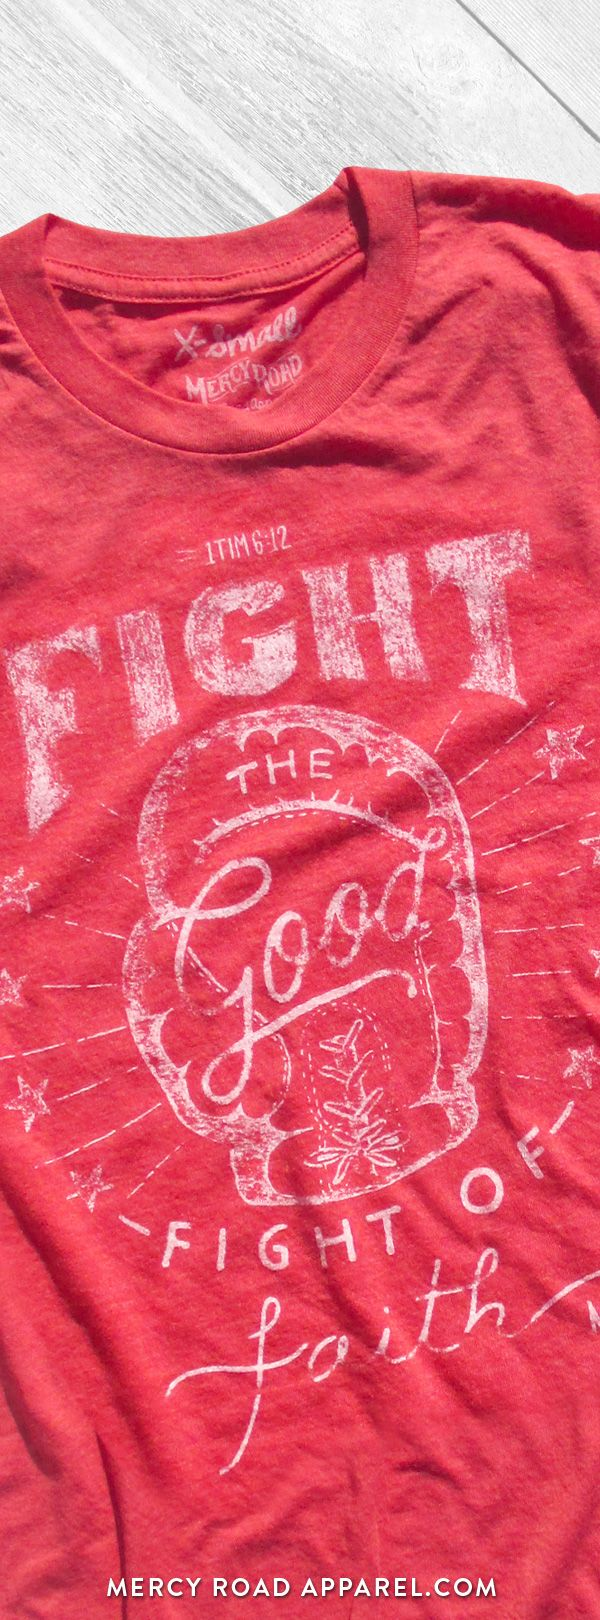 "Christian T-Shirt with vintage boxing theme and scripture 1 Timothy 6:12 ""Fight the good fight of faith."" This faith shirt is handcrafted and screenprinted on a gloriously comfy red triblend tee. Quality Christian clothing for women and men. FREE SHIPPING USA. Shop >> MercyRoadApparel.com"